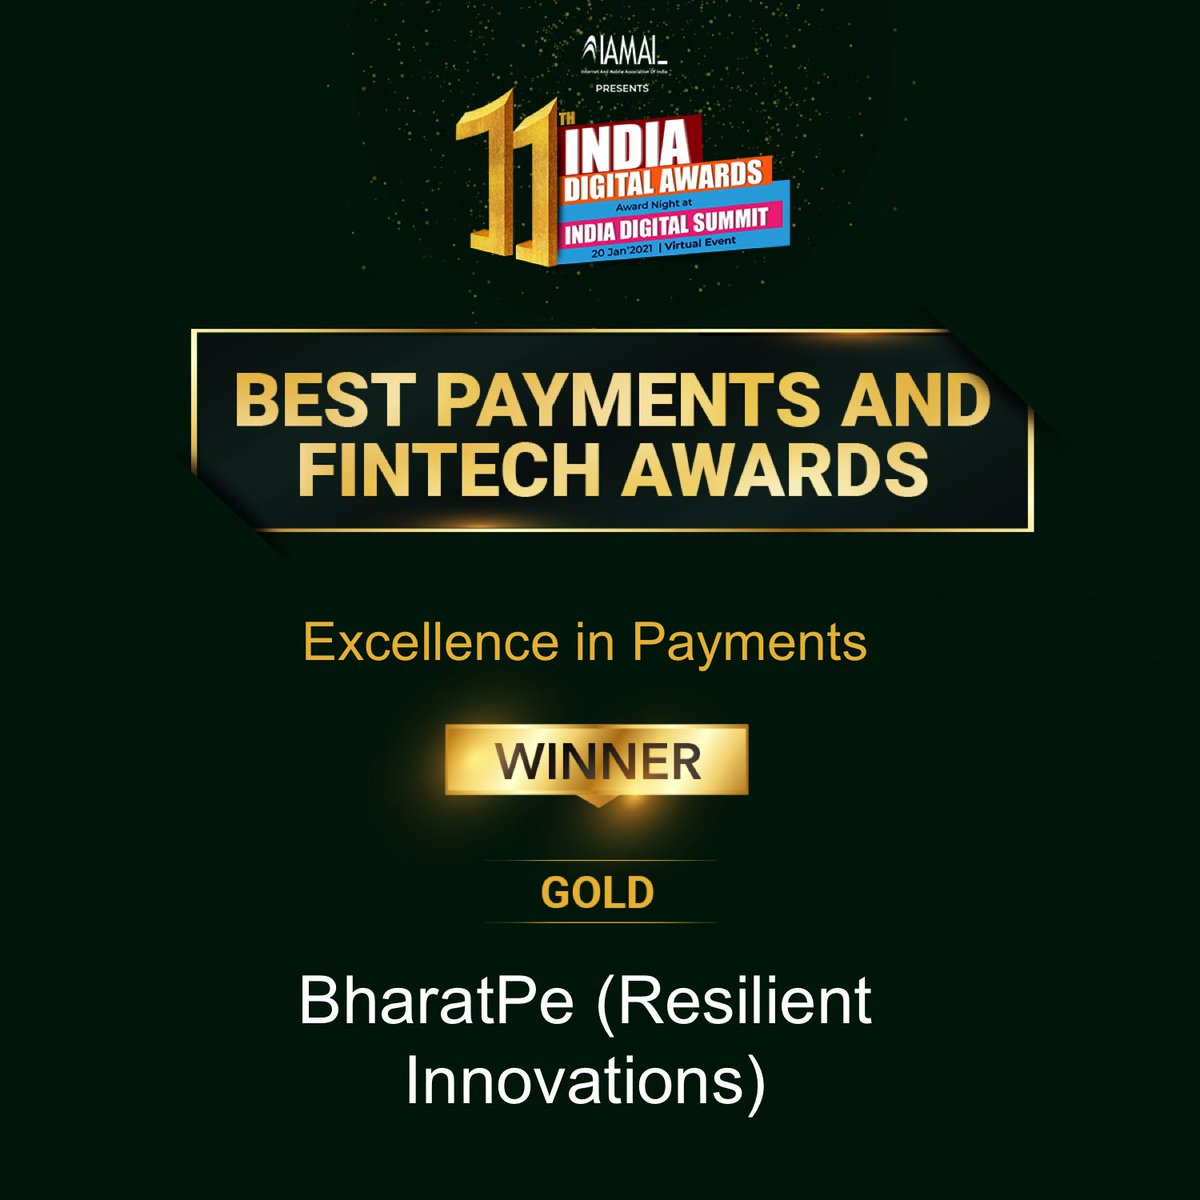 The winner for Best Payment and Fintech Awards under Excellence in Payments is Gold- BharatPe (Resilient Innovations) To know more, please visit:  #IDA2021 #digitalawards #callforentries #socialmedia #content #awards